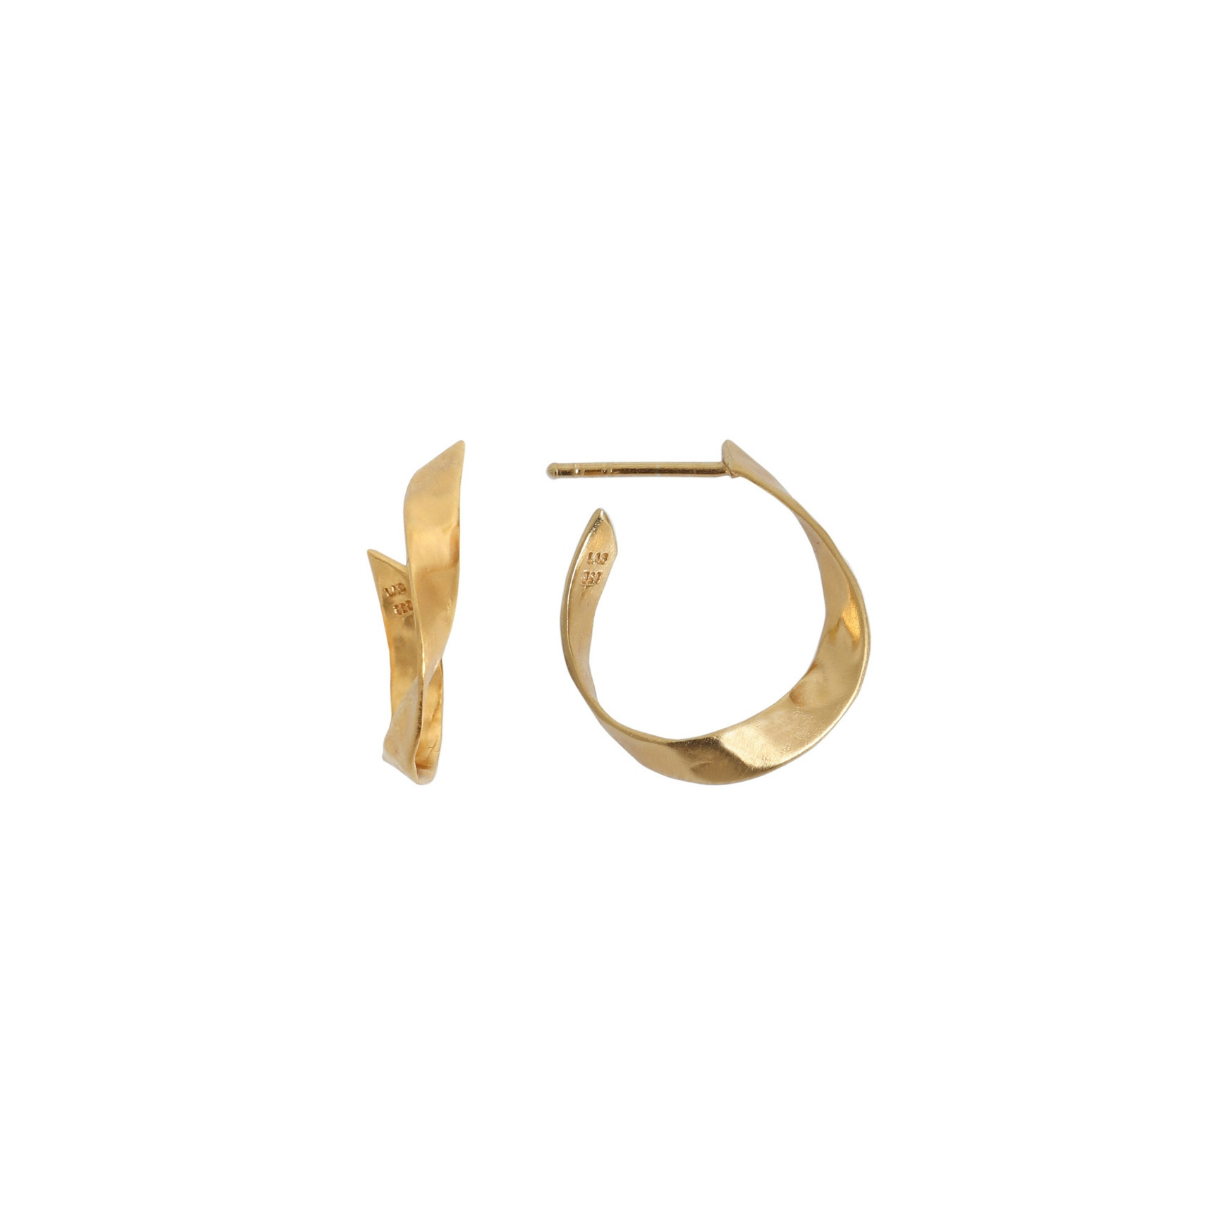 Stine-A-Twisted-Hammered-Creol-Earring-forgyldt-gold-oerering-stik-SAJ.w1220.h1220.backdrop.png